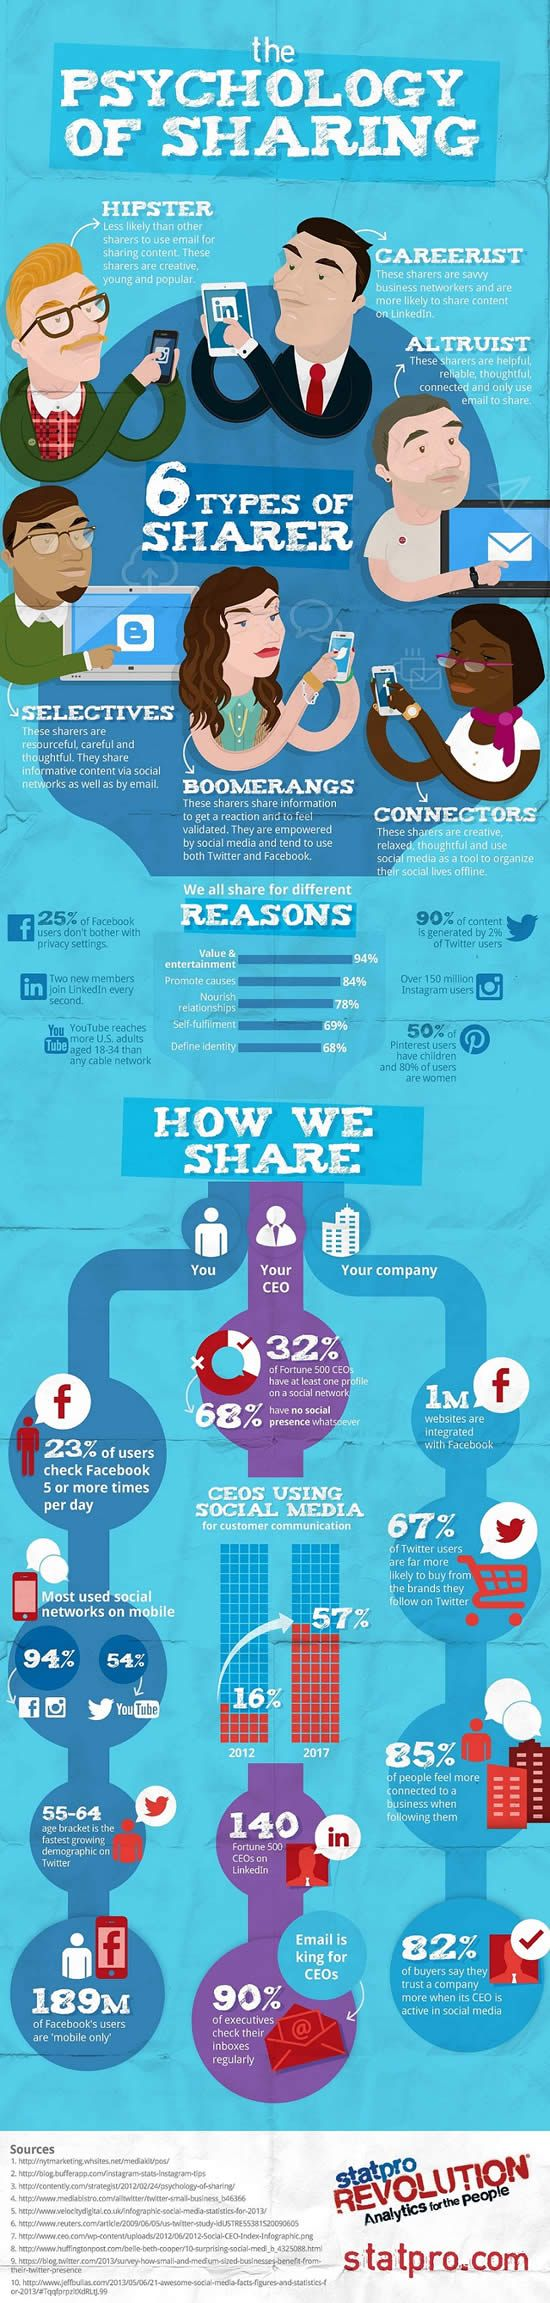 The psychology of sharing - infographic by StatPro via MarketingProfs - click to view larger version